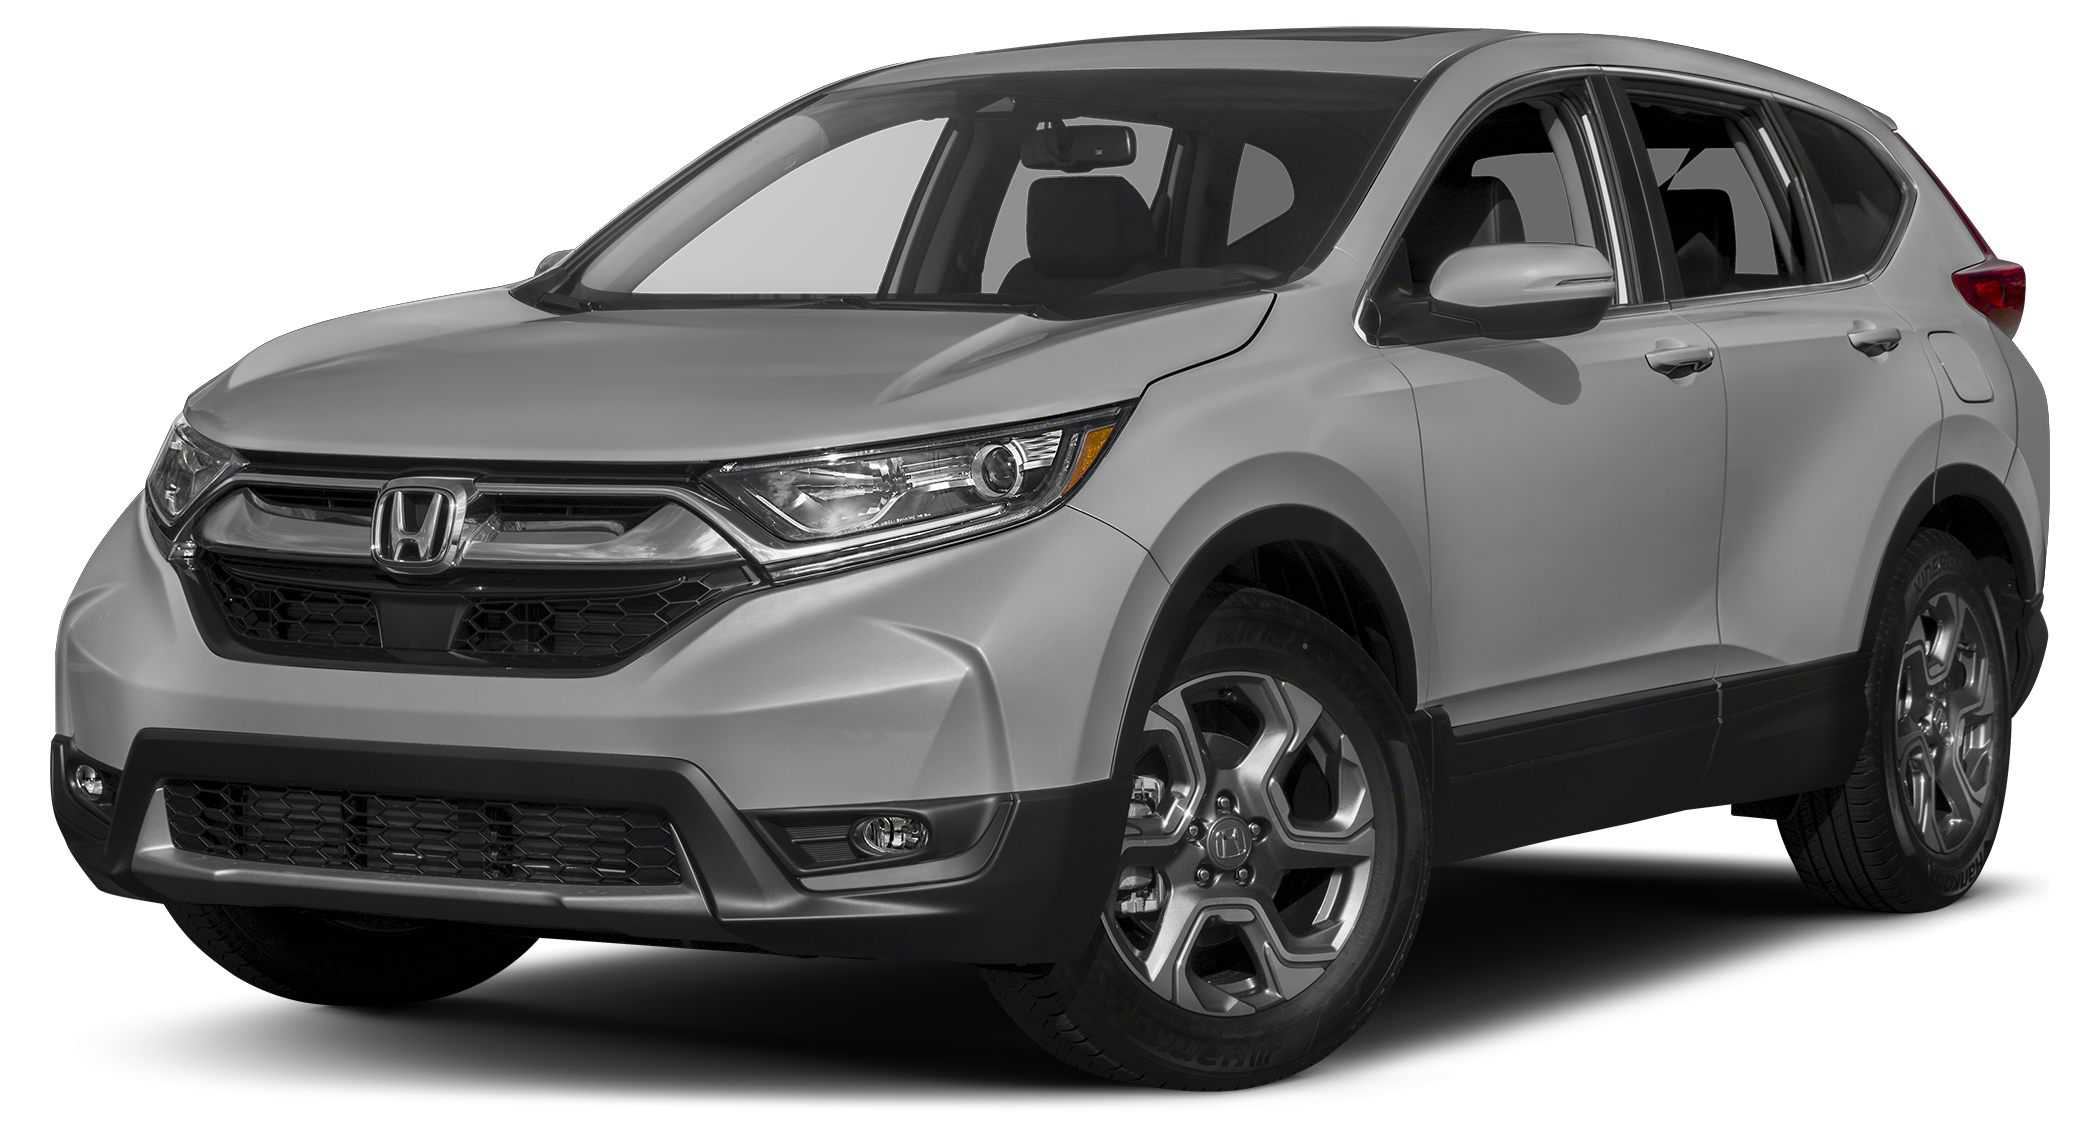 2017 honda cr v for sale in rockville md 7farw1h83he011257 for Herson honda rockville